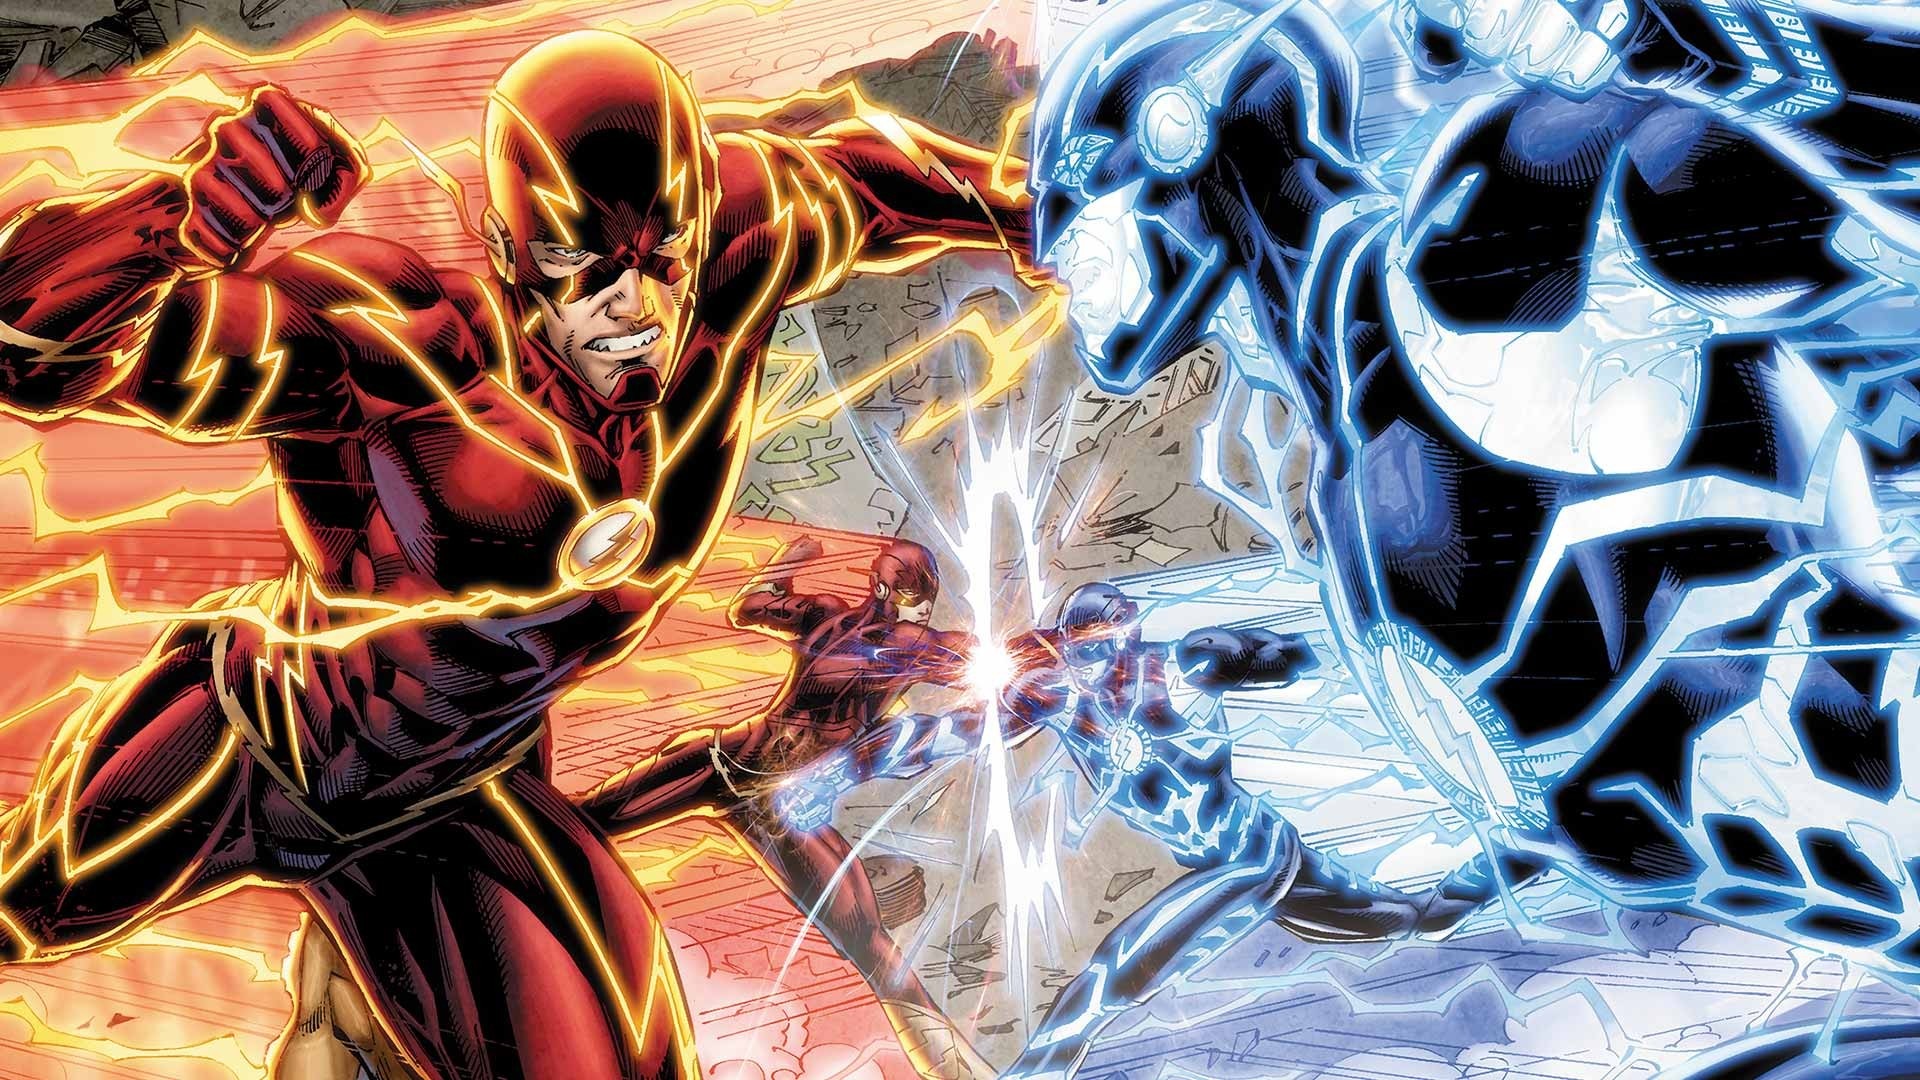 General 1920x1080 DC Comics Flash superhero Zoom (fictional character)